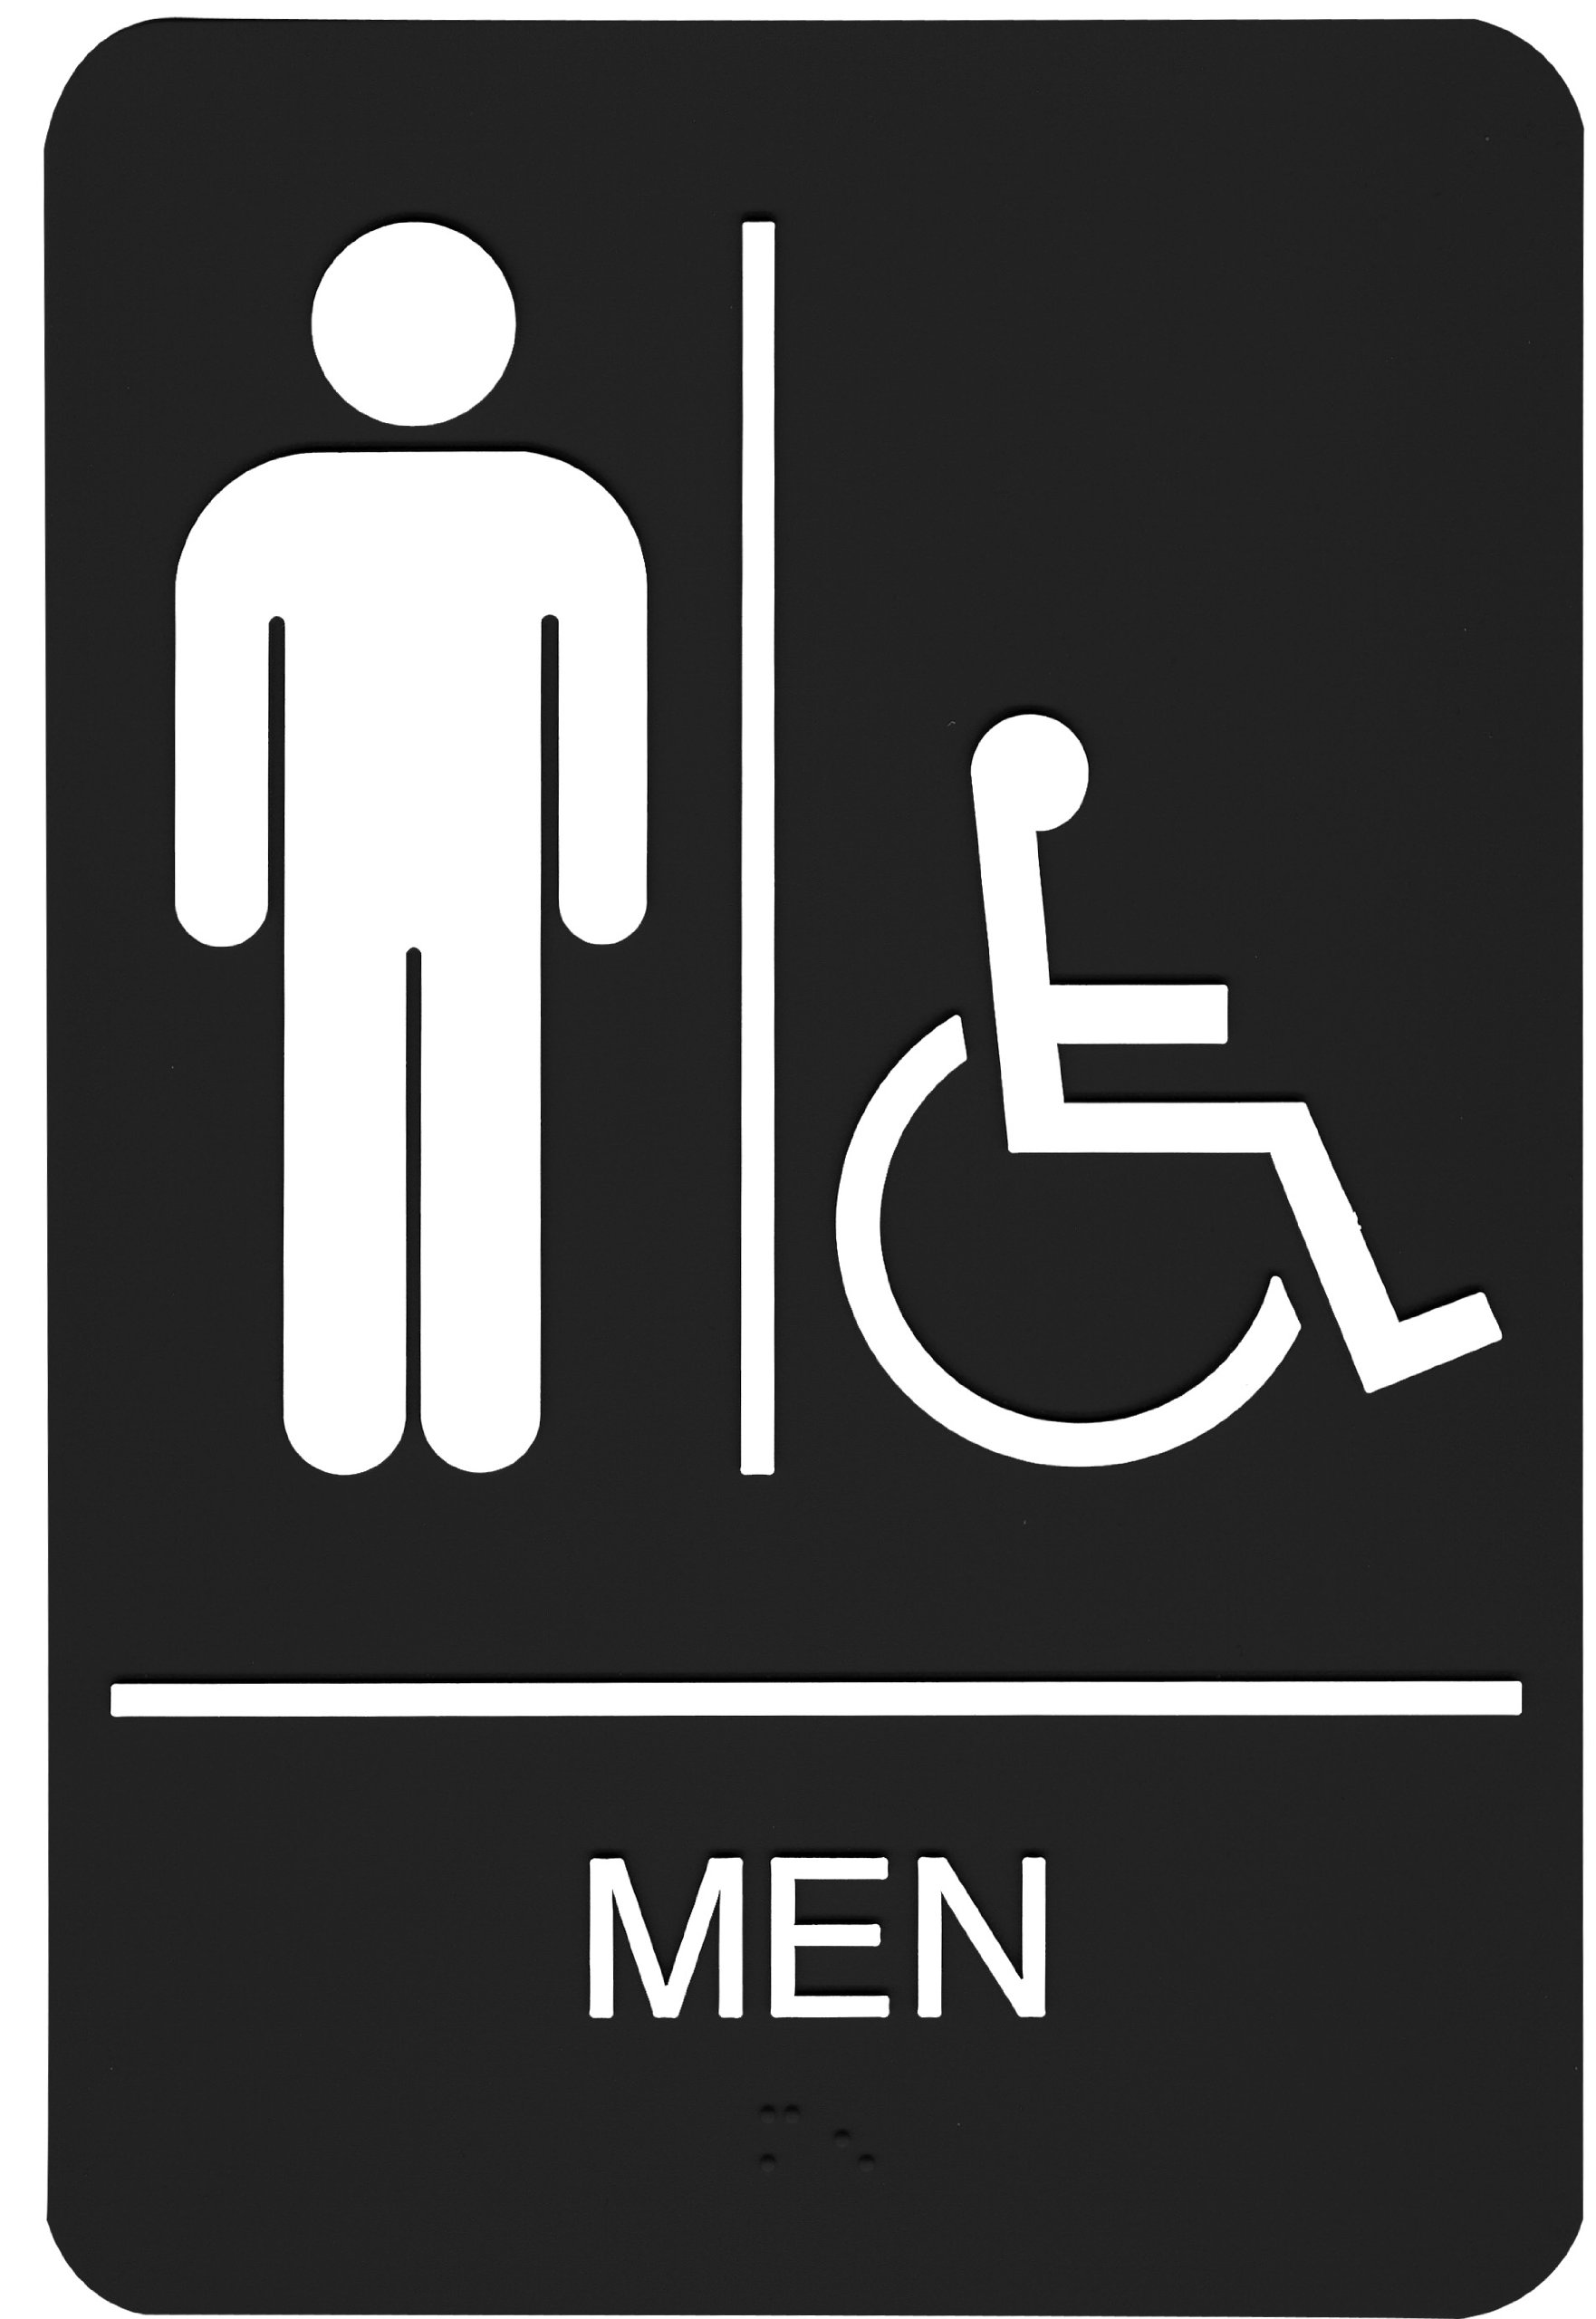 Free Restroom Signs Download Free Clip Art Free Clip Art On Clipart Library